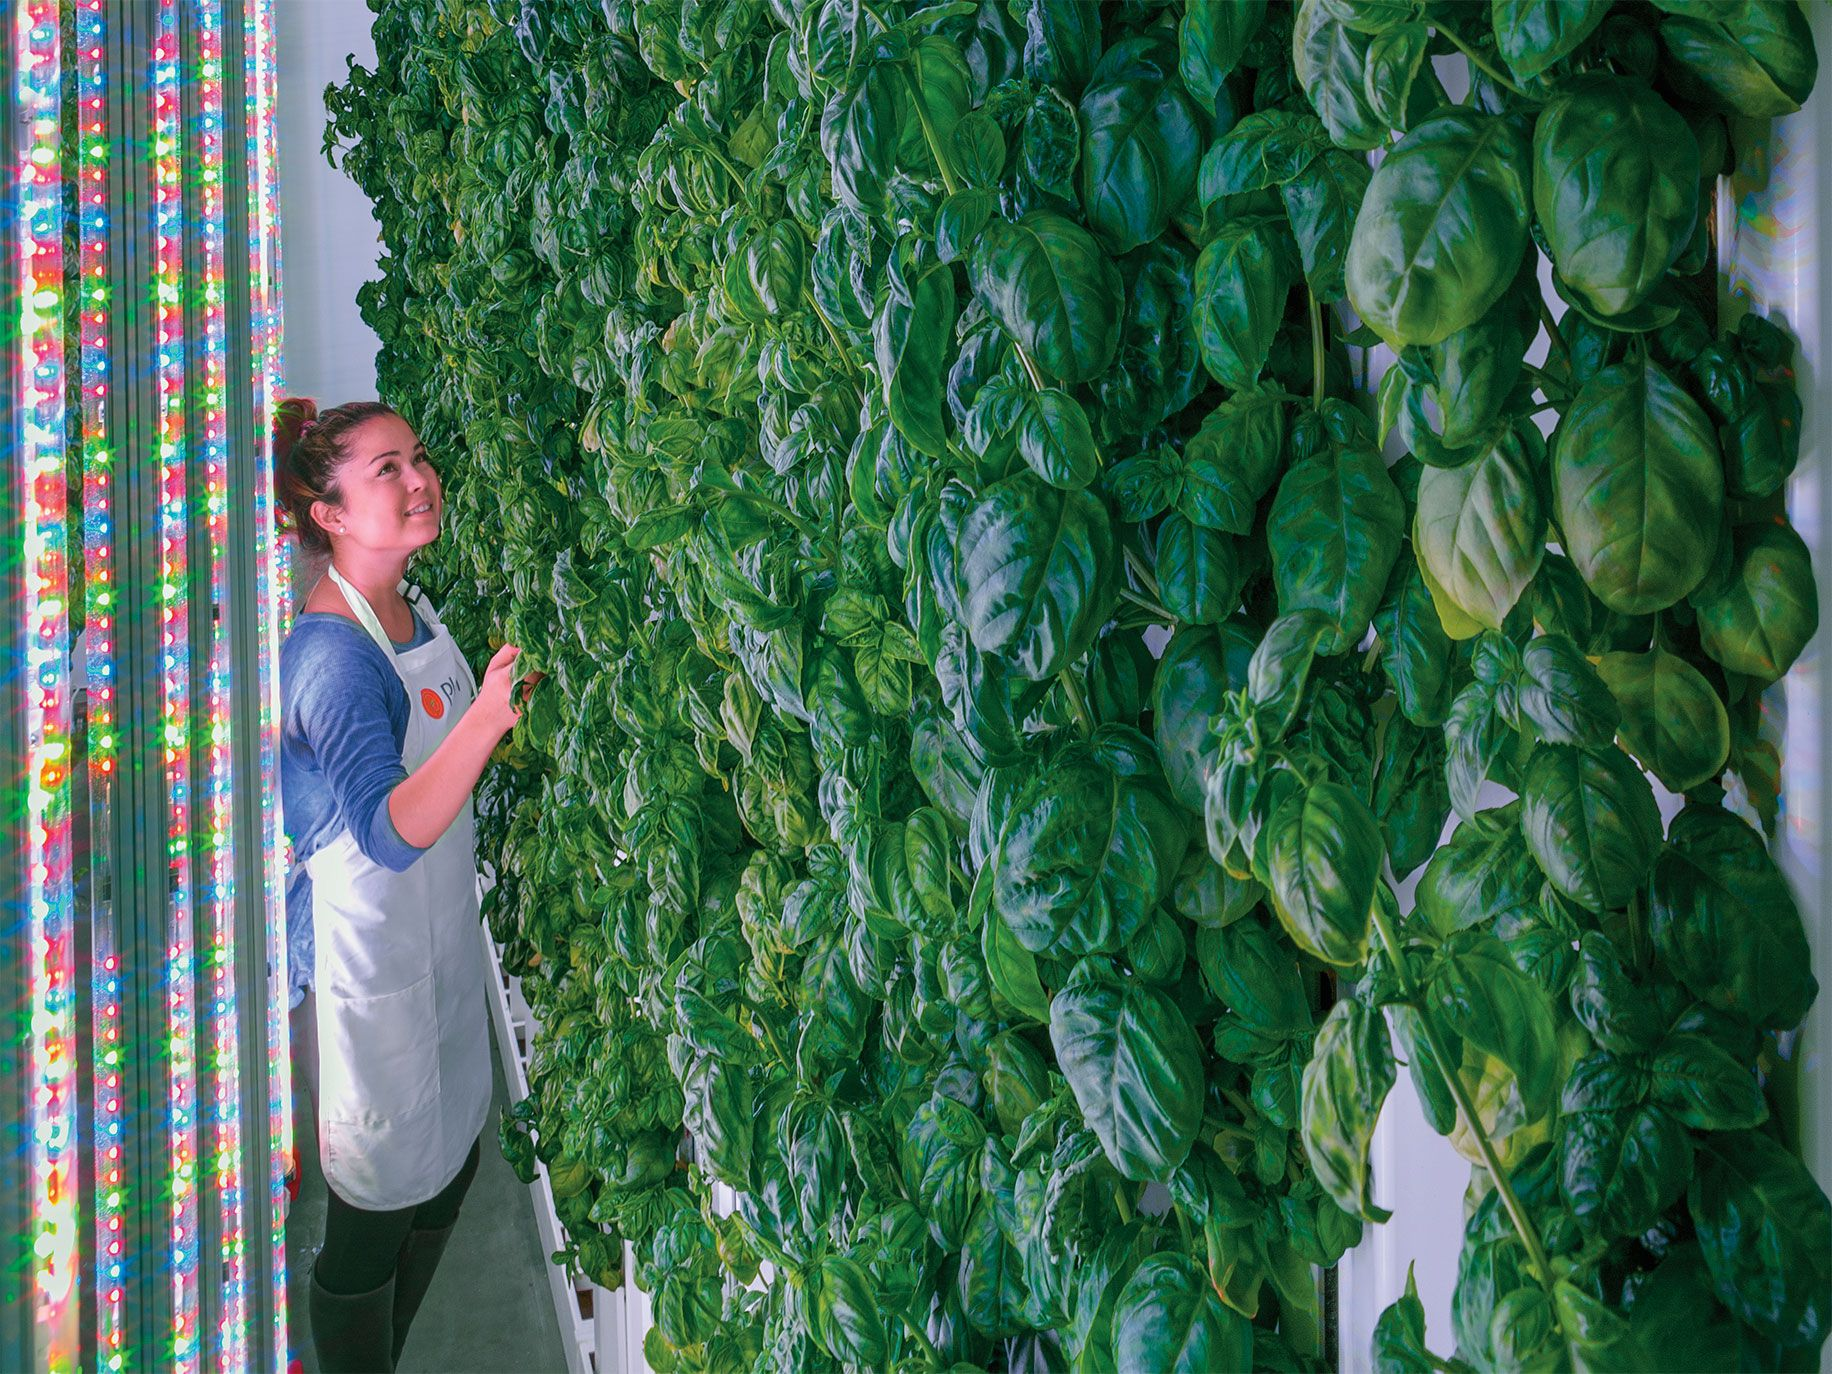 Under the glow of LED light arrays, Plenty's crops grow on 20-foot-tall towers inside a climate-controlled facility in South San Francisco.